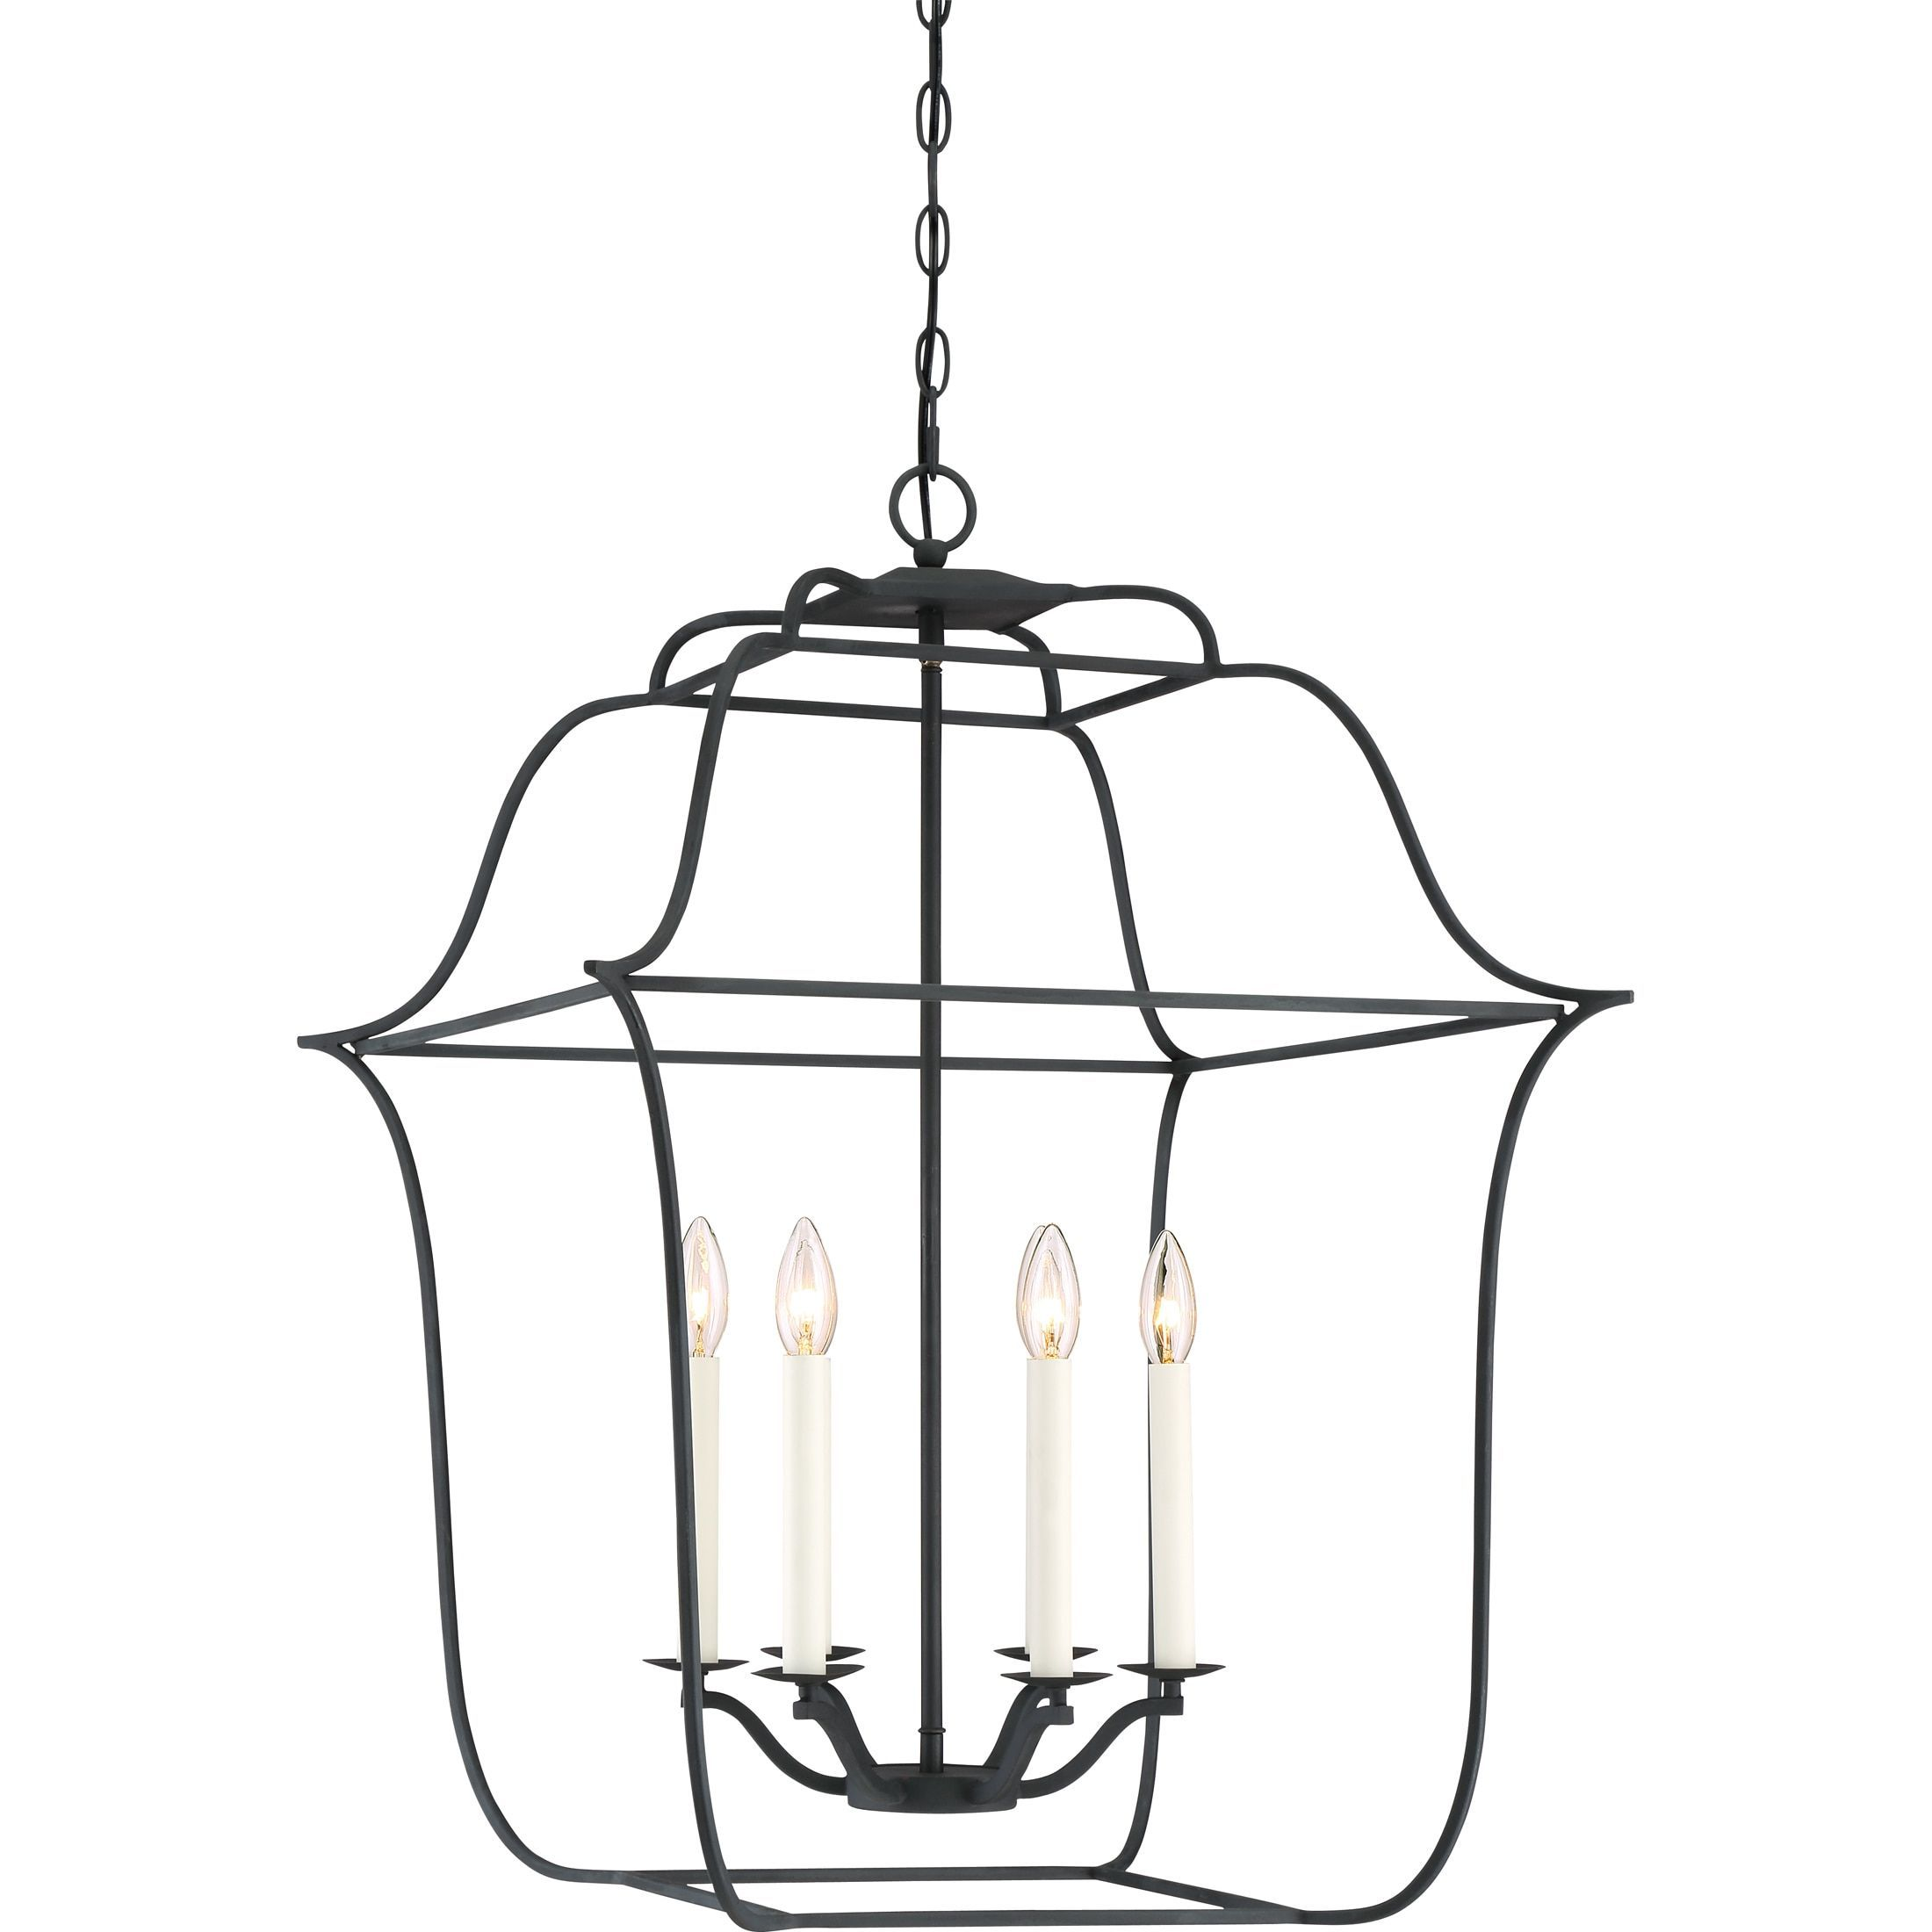 Quoizel Gallery Royal Ebony Steel 6 light Cage Chandelier Extra